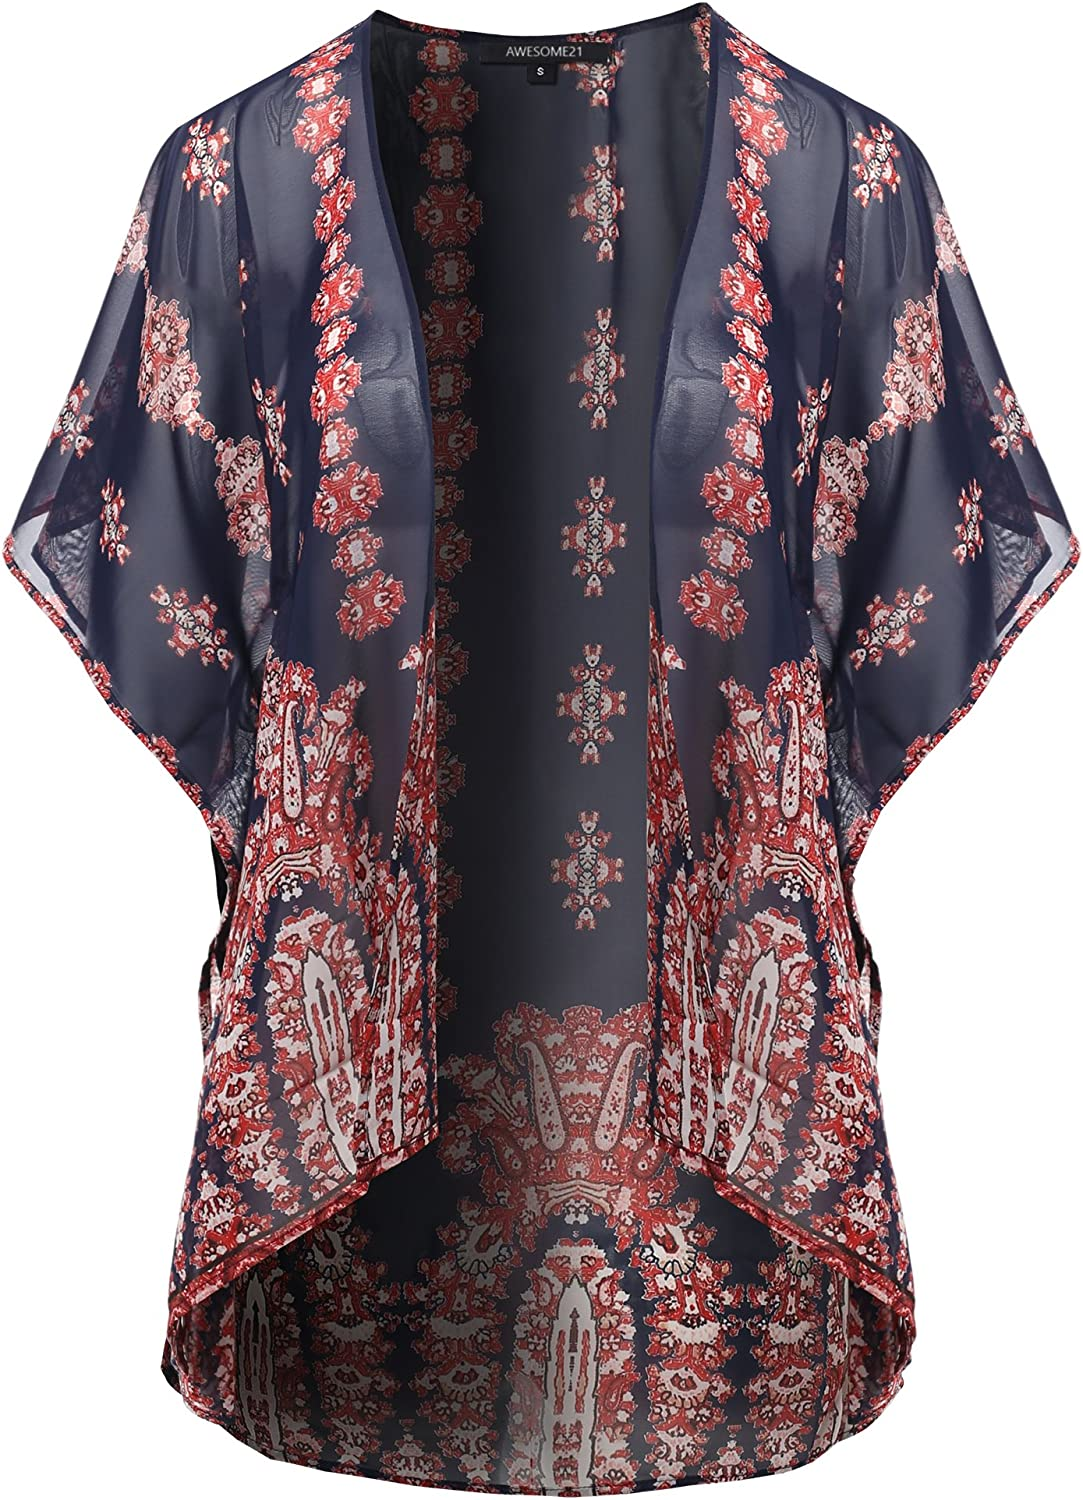 Awesome21 Women's Open Front Short Sleeves Floral Print Cardigan  Made in USA